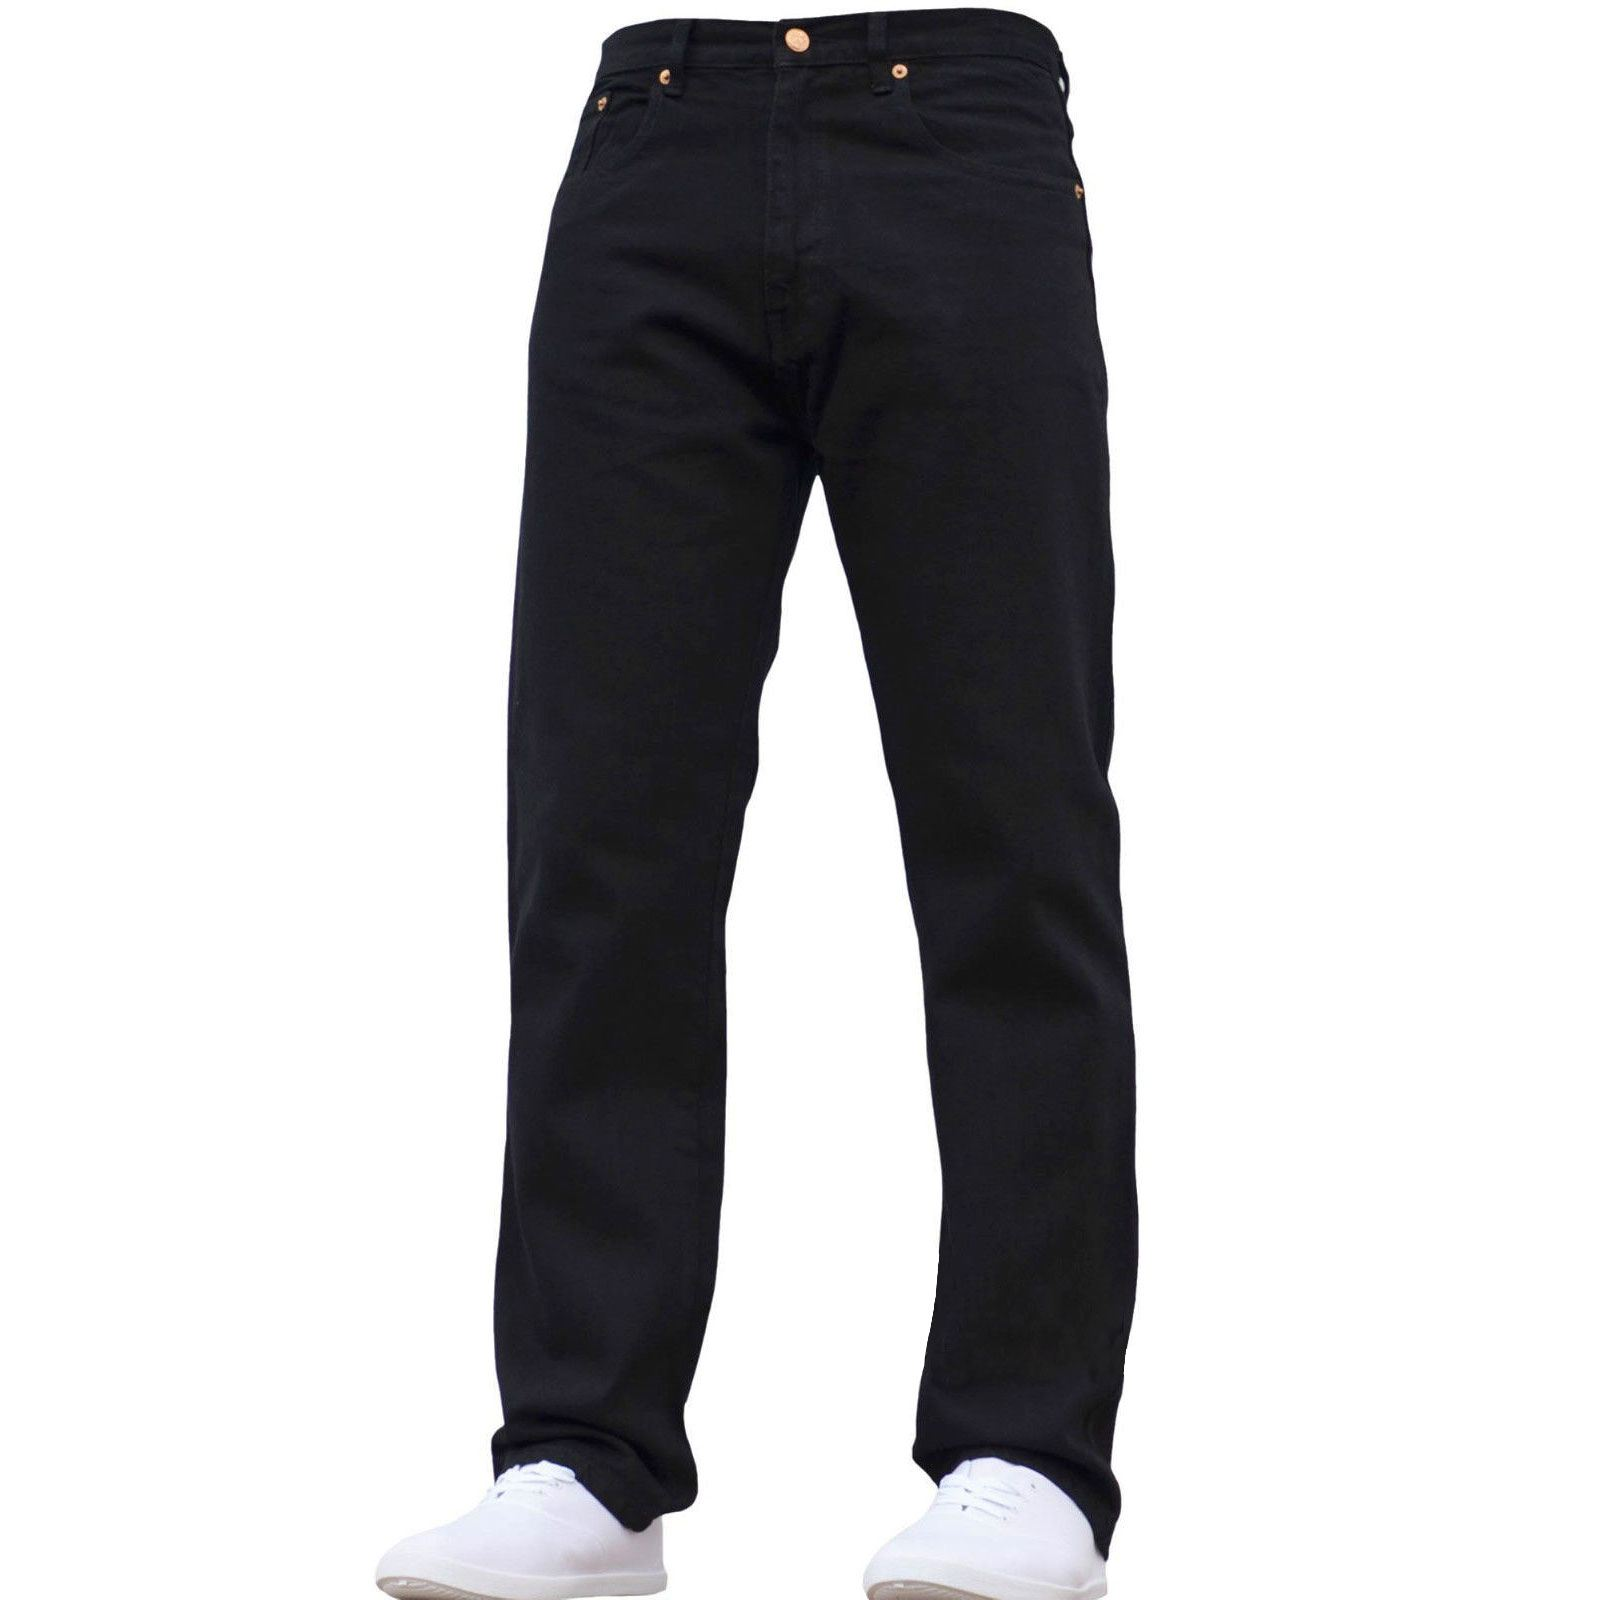 Mens Straight Leg Denim Jeans Work Basic Wash Trousers Bottom Regular Fit Pants Ebay